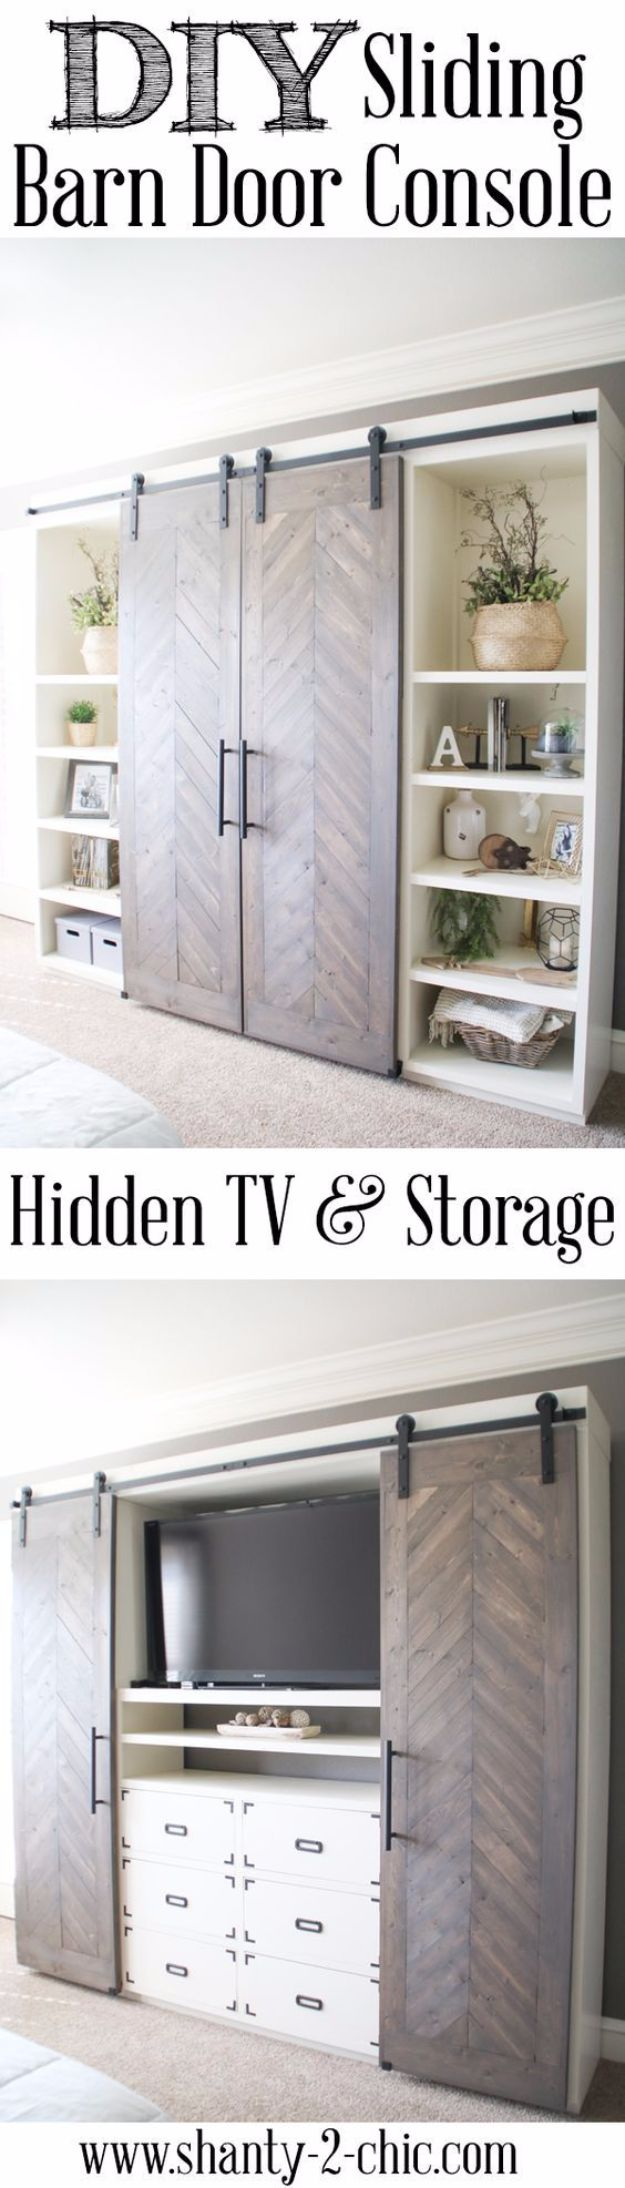 Rustic Farmhouse DIY Media Consoles and TV Stands - Sliding Barn Door Media Console - Make a Do It Yourself Entertainment Center With These Easy Step By Step Tutorials - Easy Farmhouse Decor Media Stand for Television - Free Plans and Instructions for Building and Painting Your Own DIY Furniture - IKEA Hacks for TV Stand Idea - Quick and Easy Ways to Decorate Your Home On A Budget #diyhomedecor